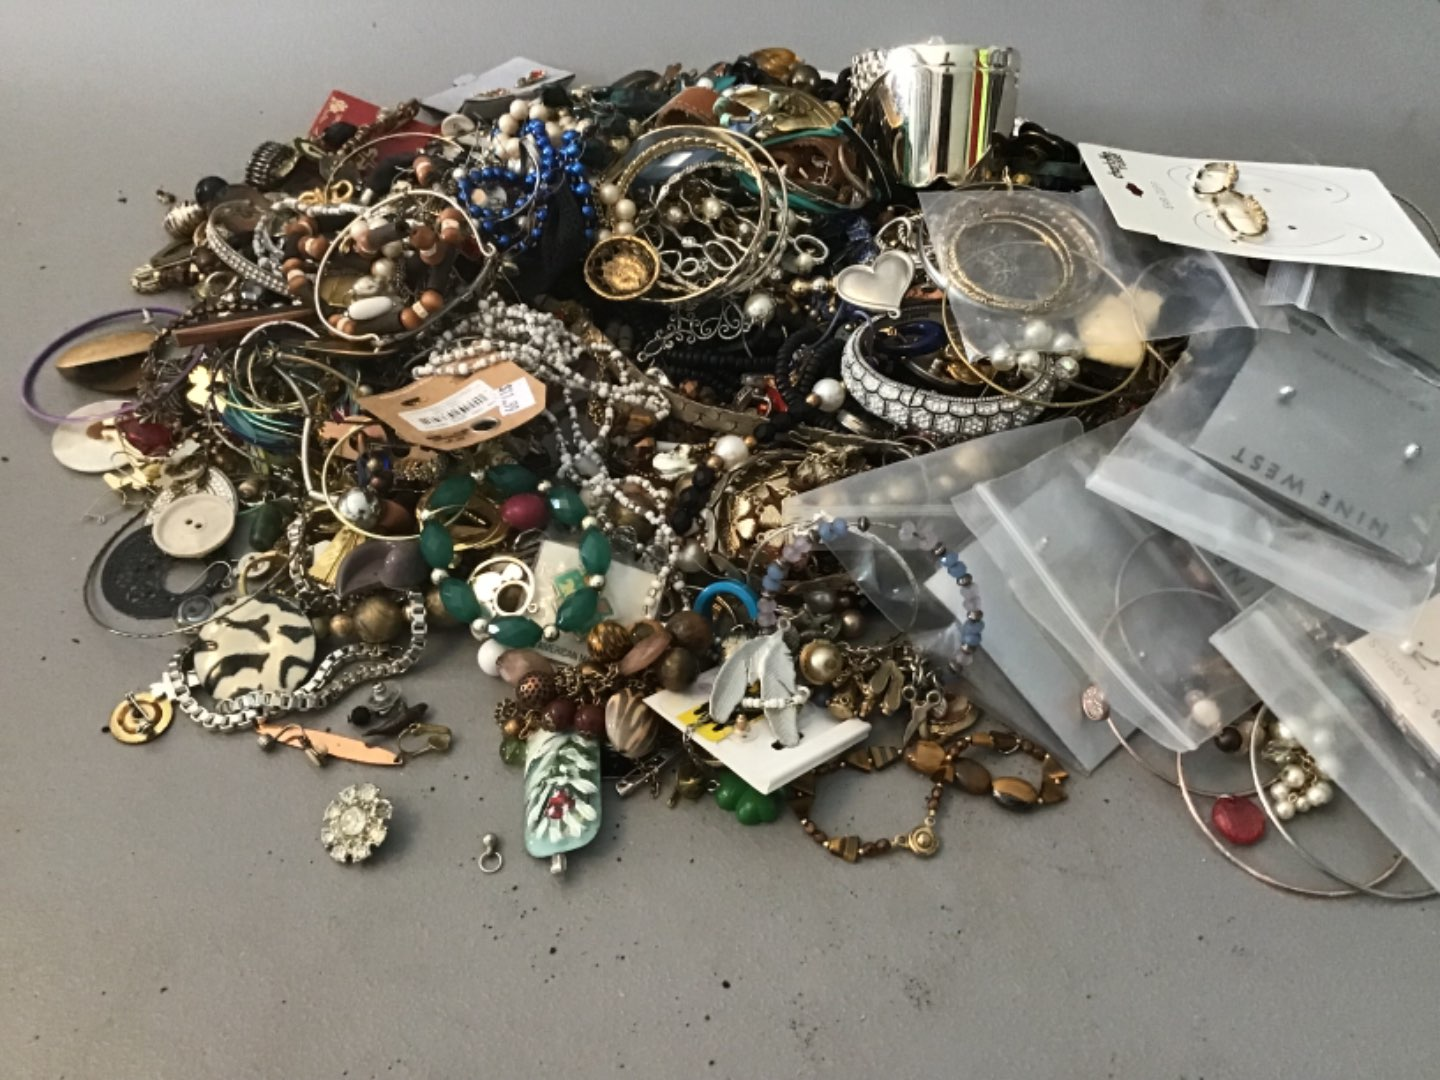 Lot # 234 Another HUUUGE LOT OF COSTUME JEWELRY! Approx 10 Lbs - As Found!